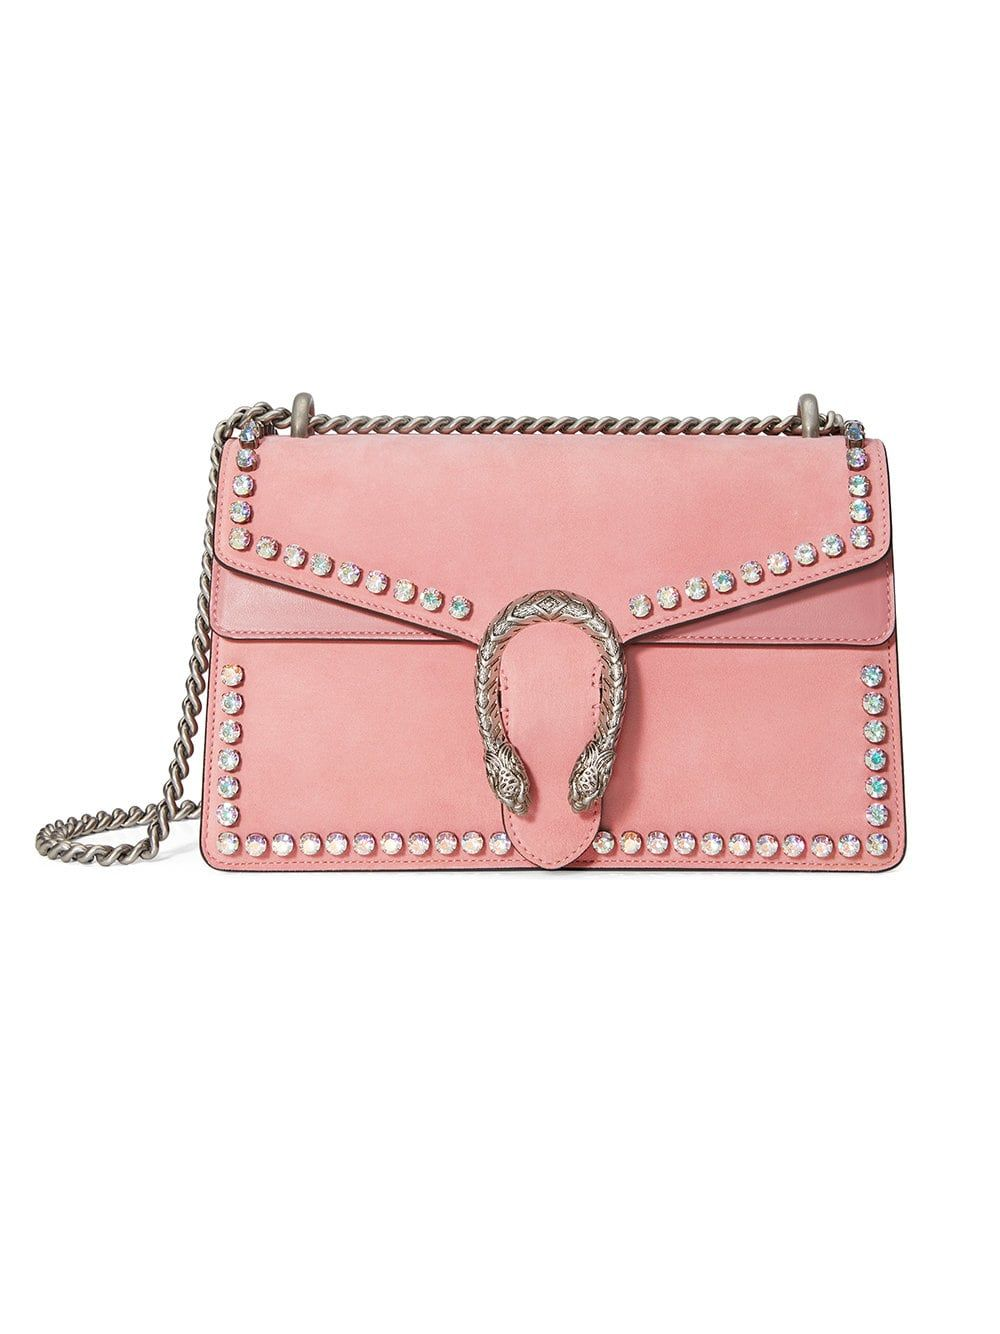 24c24ab1a52 GUCCI Pink leather Pink Dionysus Crystal suede shoulder bag from Gucci.